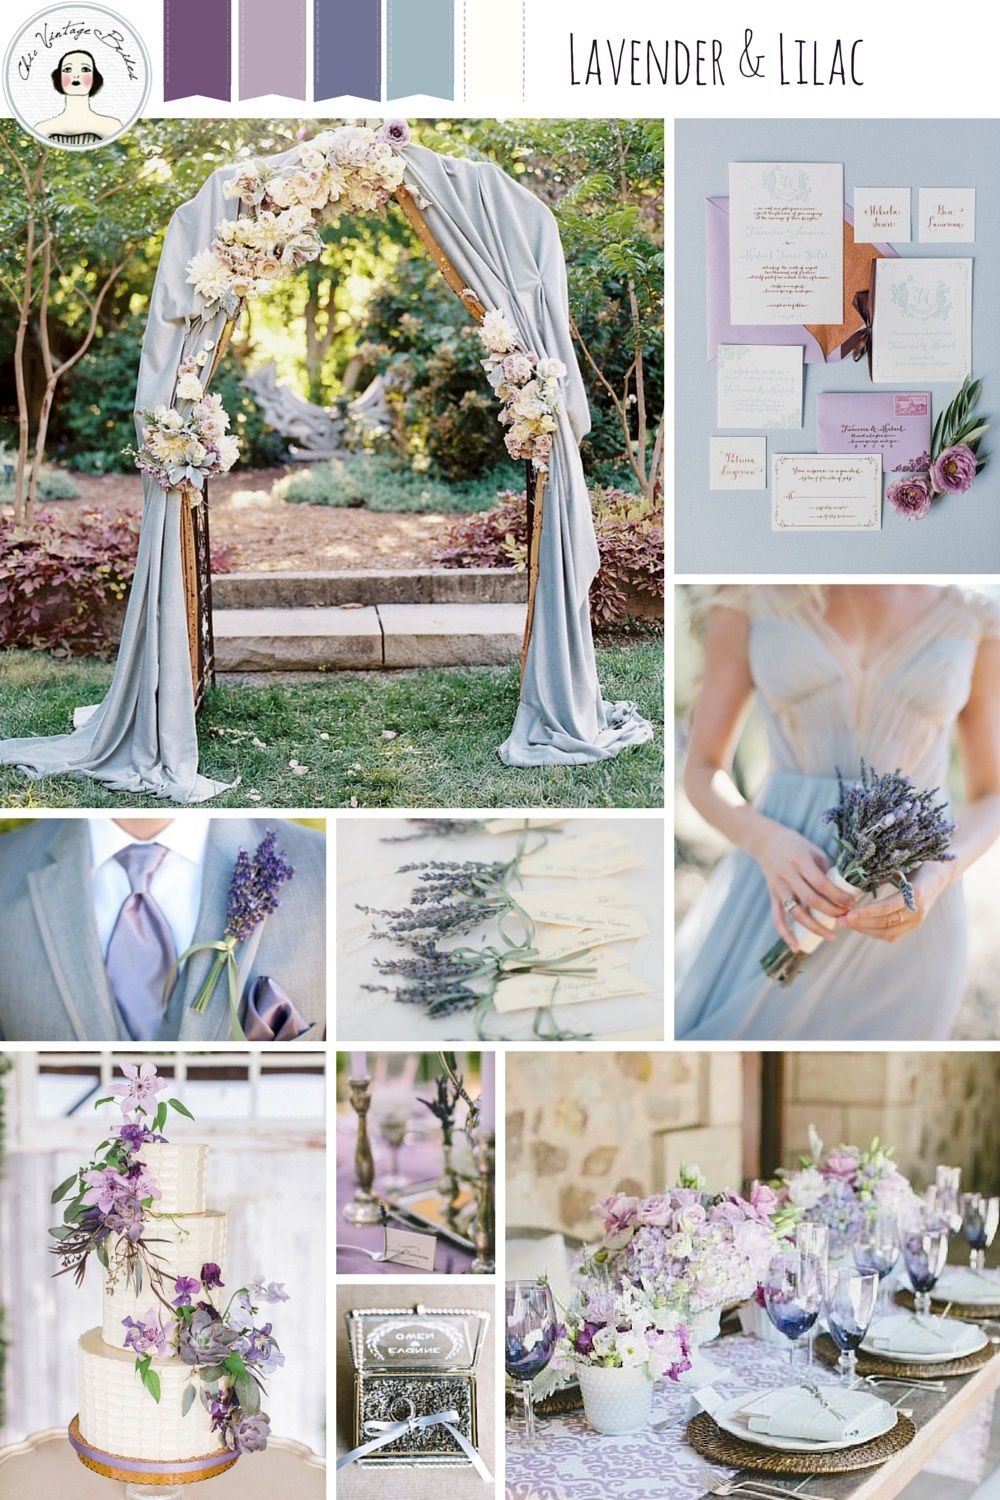 wedding ideas lavender a lilac amp lavender wedding inspiration board 28237